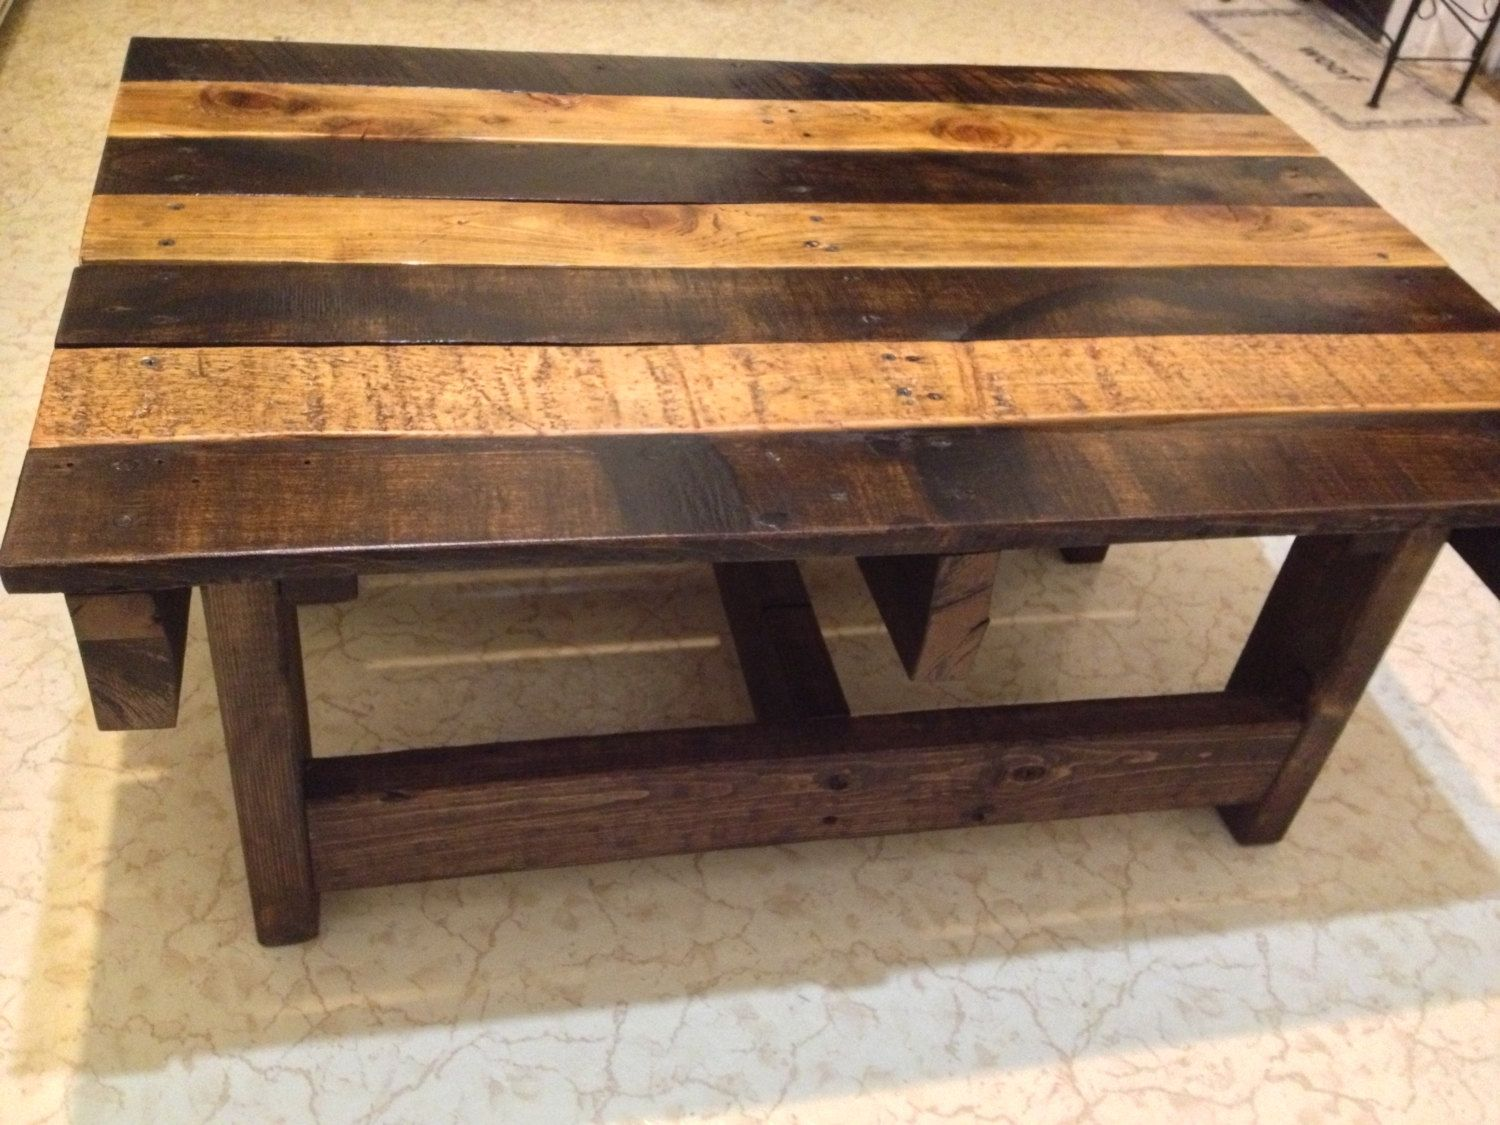 Hand crafted handmade reclaimed rustic pallet wood coffee table by kevin davis woodwork Rustic wooden coffee tables